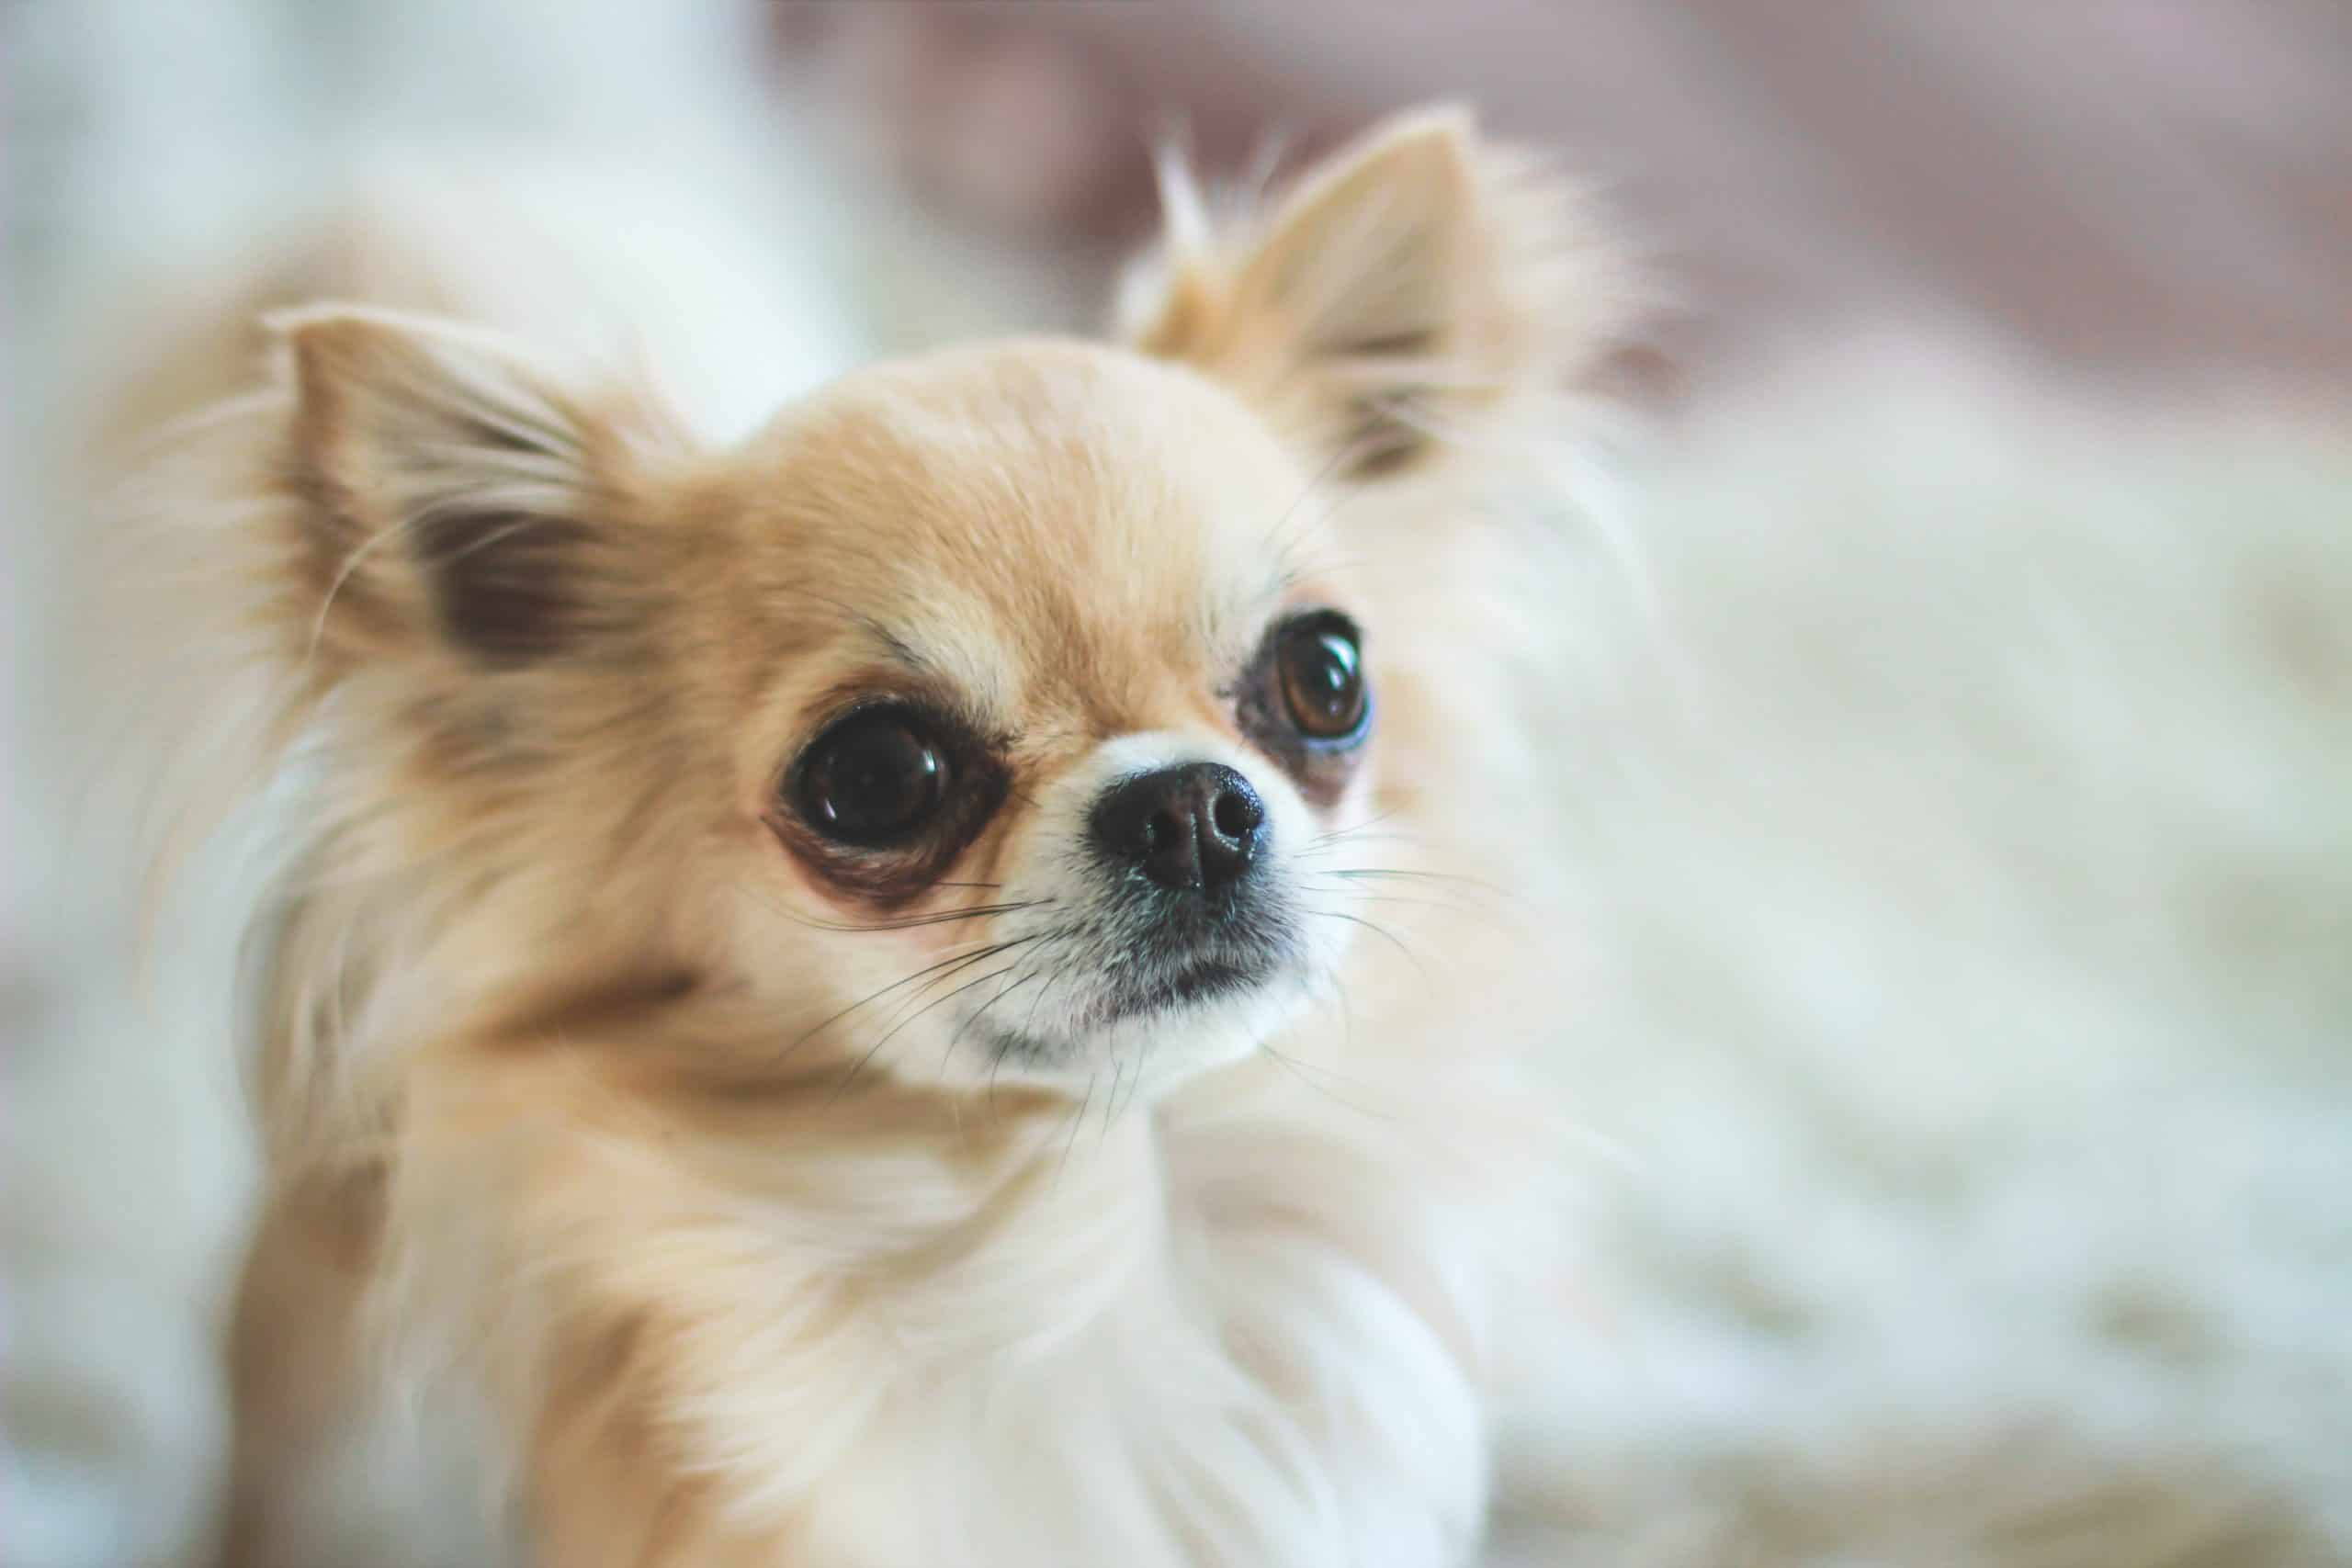 Chihuahua with tear stains.